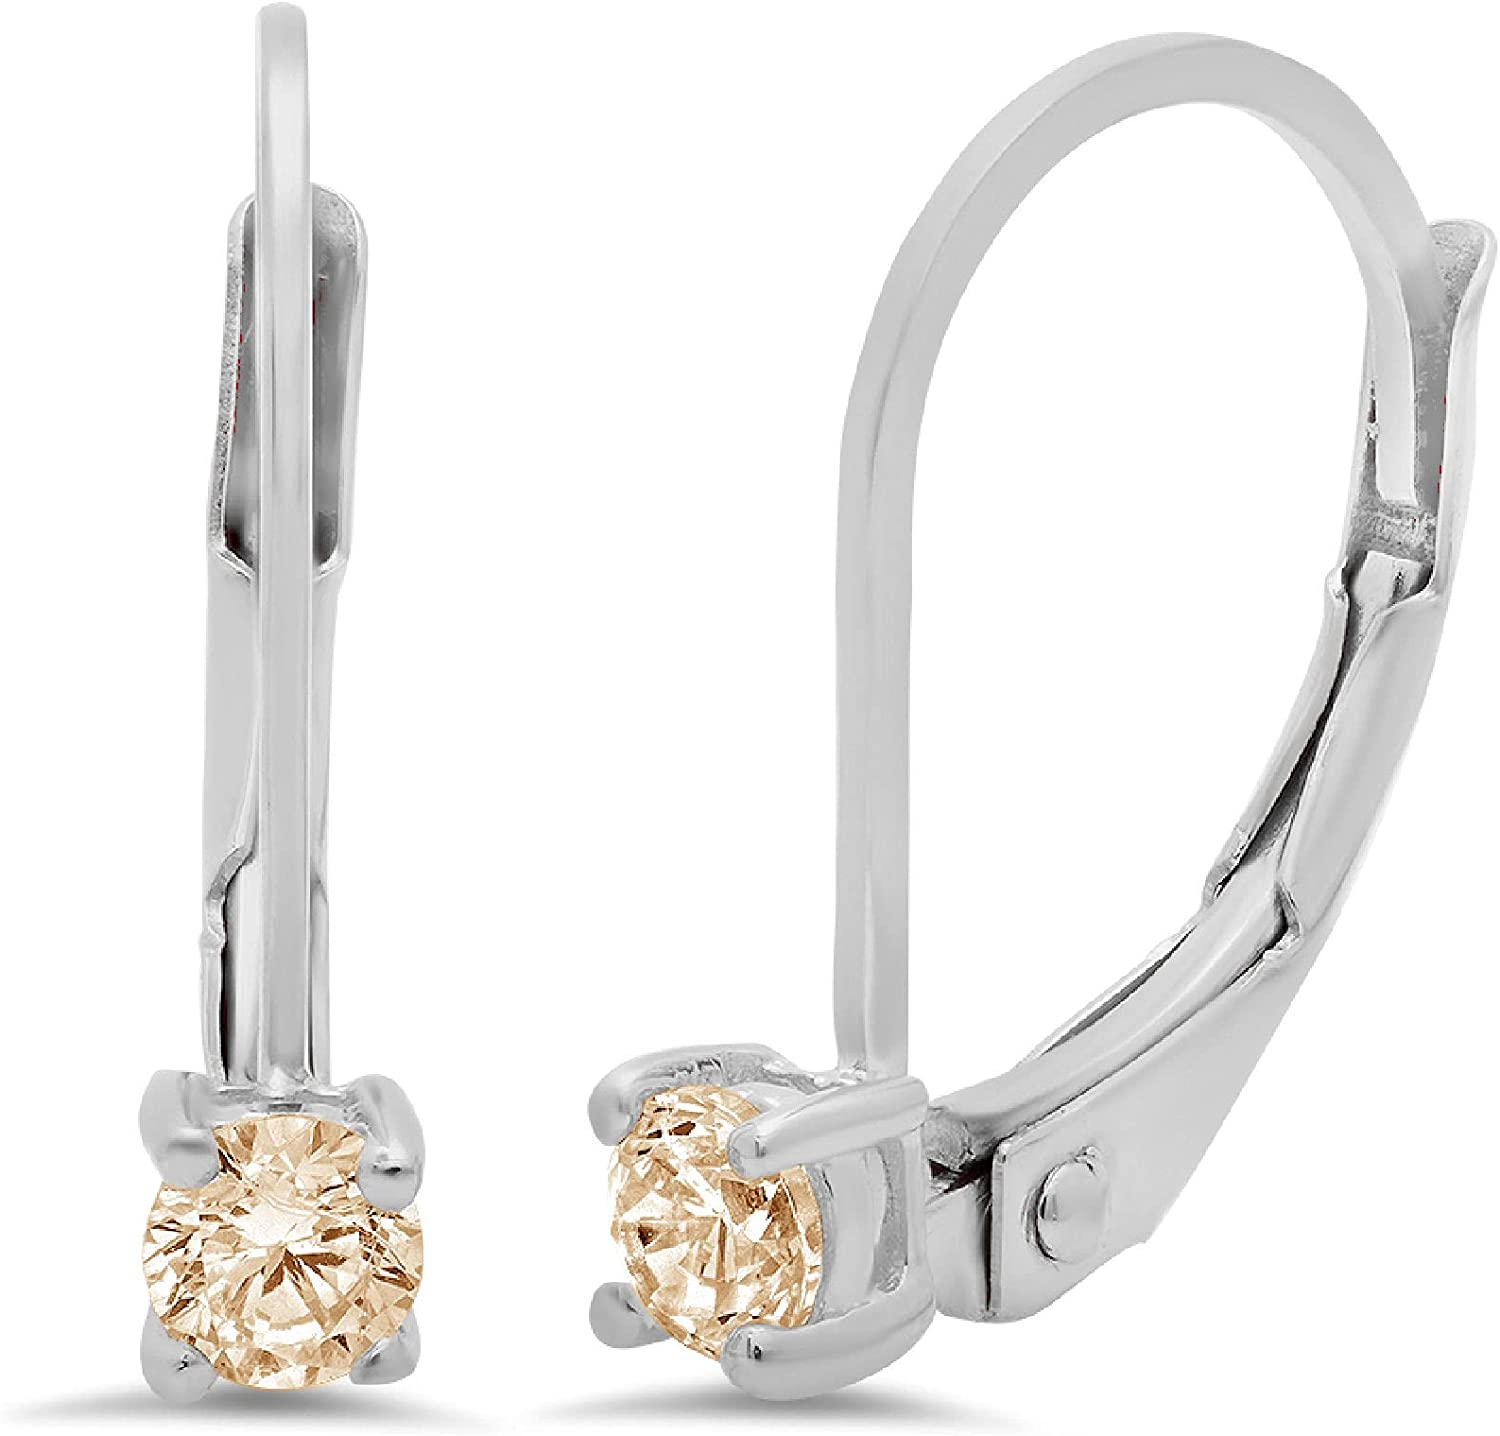 0.1ct Brilliant Round Cut Solitaire Flawless Genuine VVS1 Yellow Moissanite Gemstone Unisex Pair of Lever back Drop Dangle Designer Earrings Solid 18k White Back conflict free Jewelry